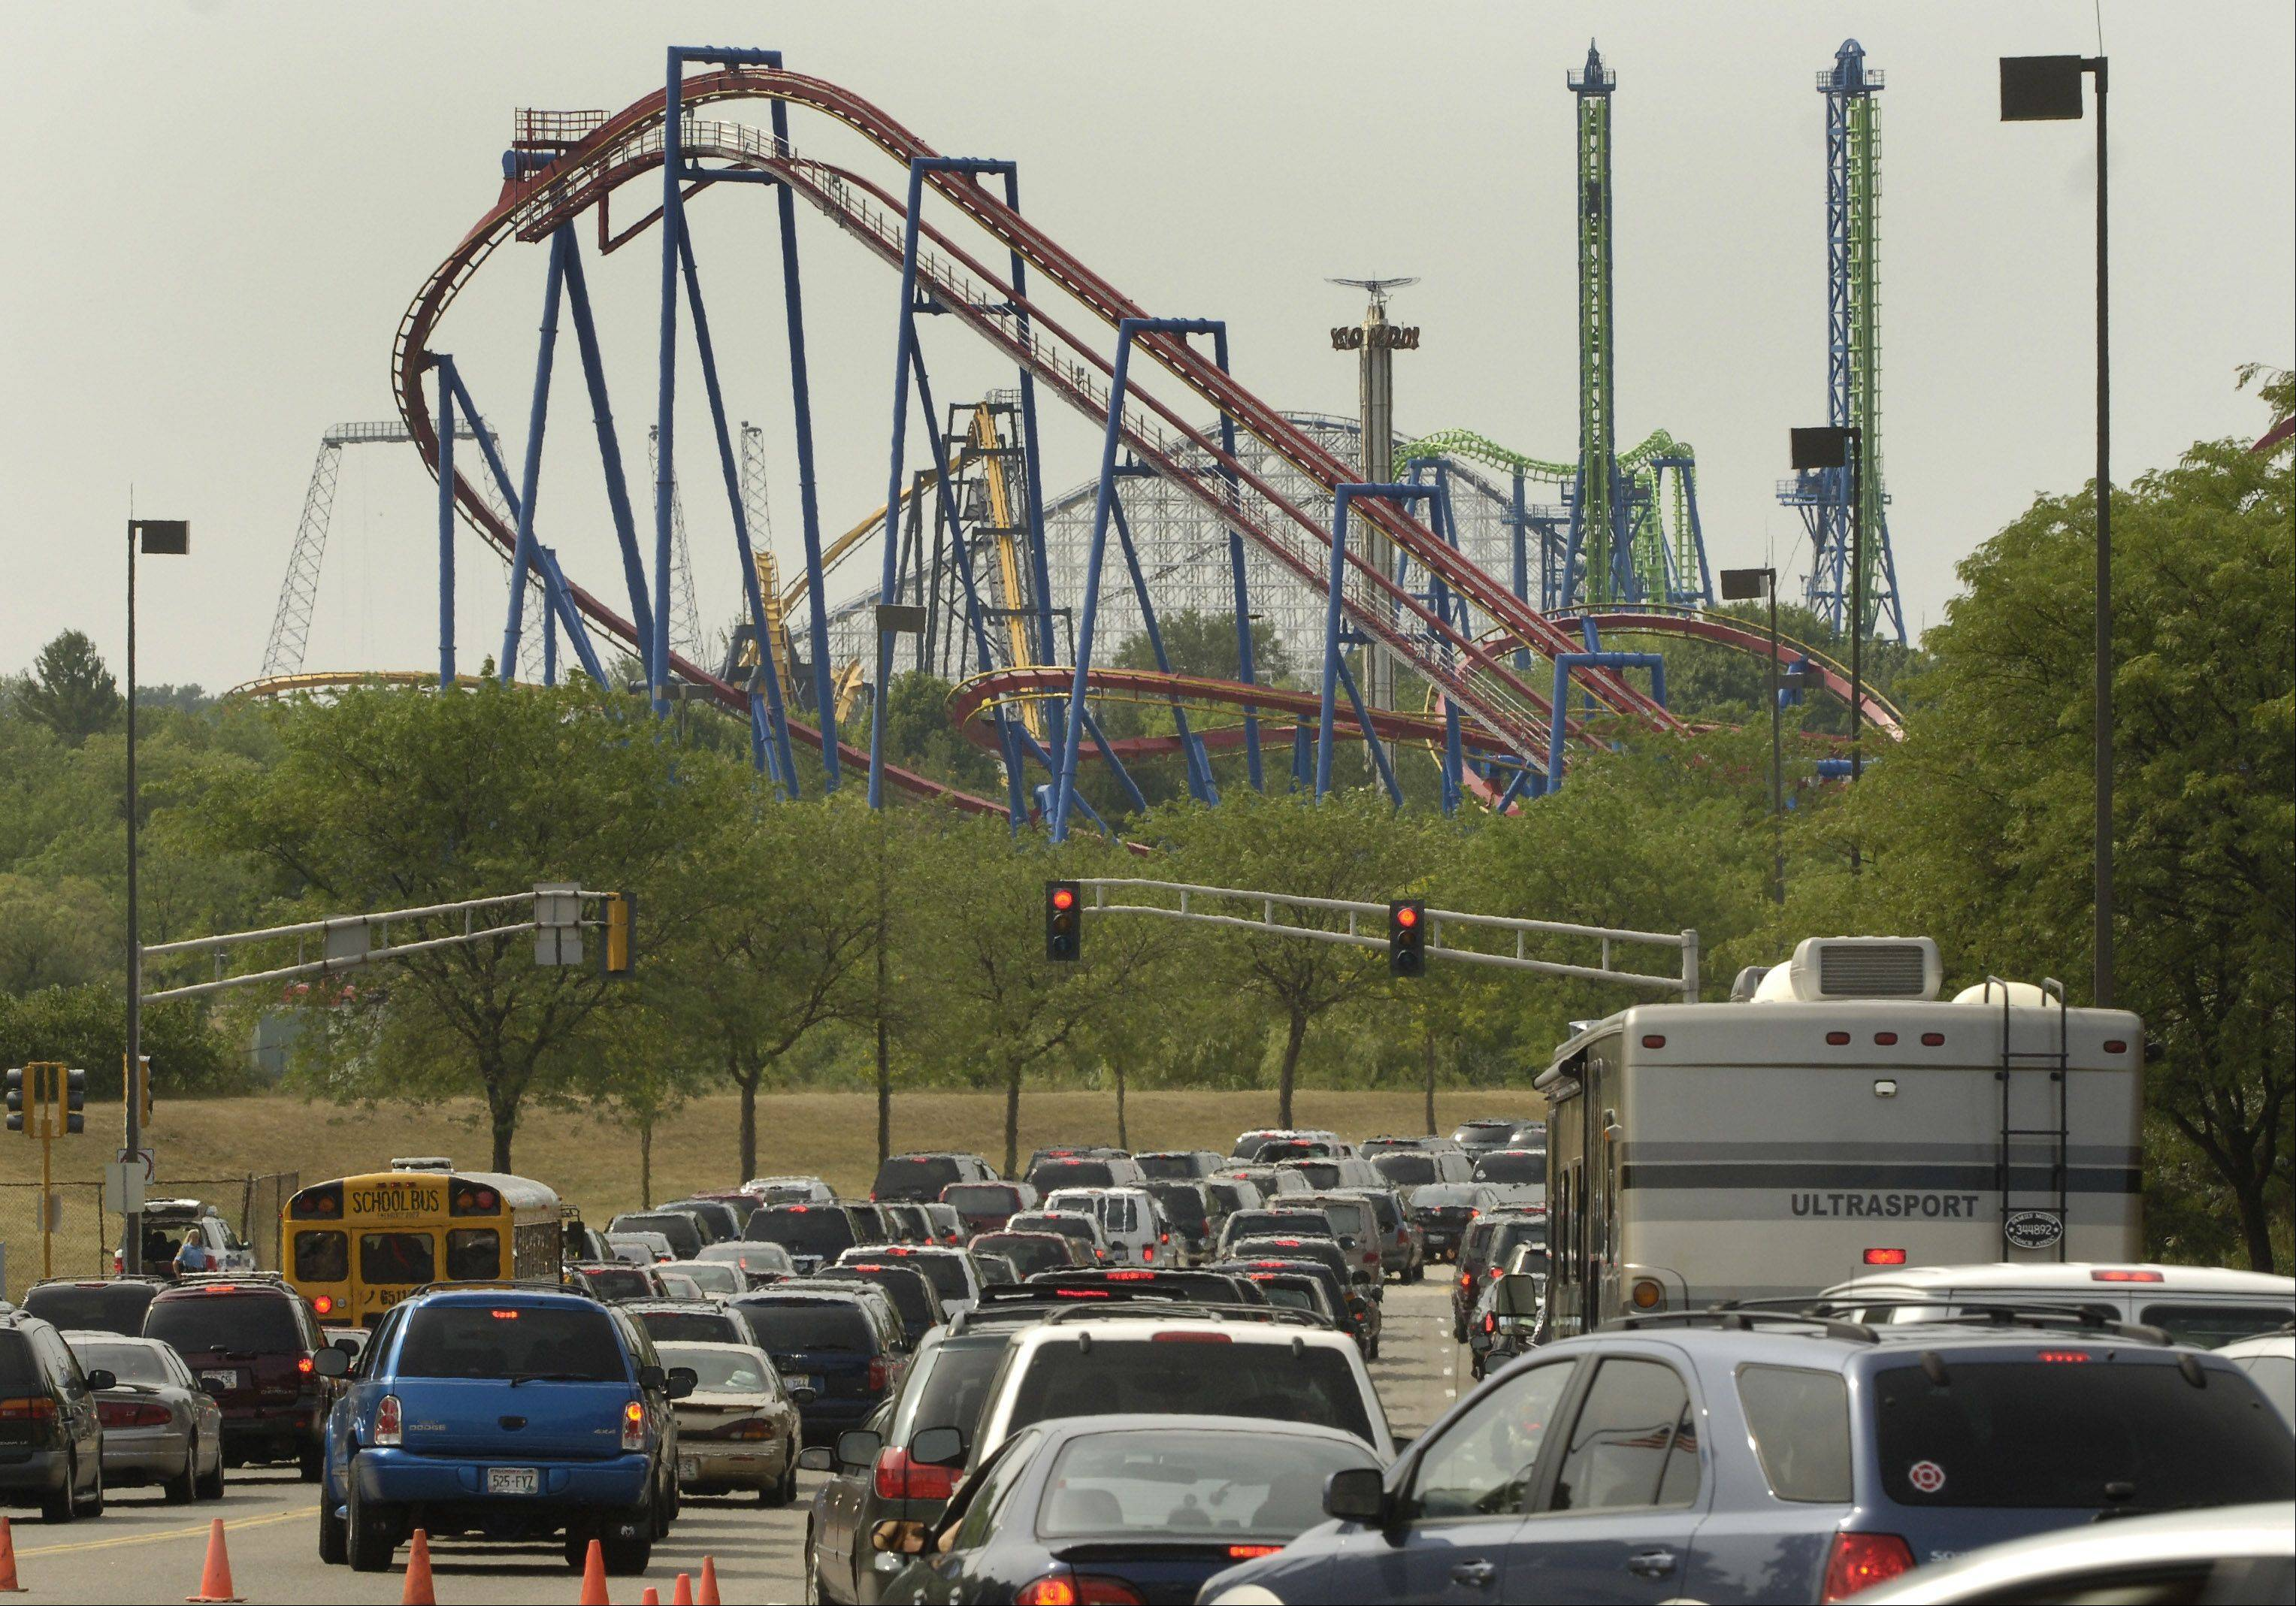 Traffic heading into Gurnee's Six Flags Great America. It's New Jersey sister is working at becoming the world's largest theme park.